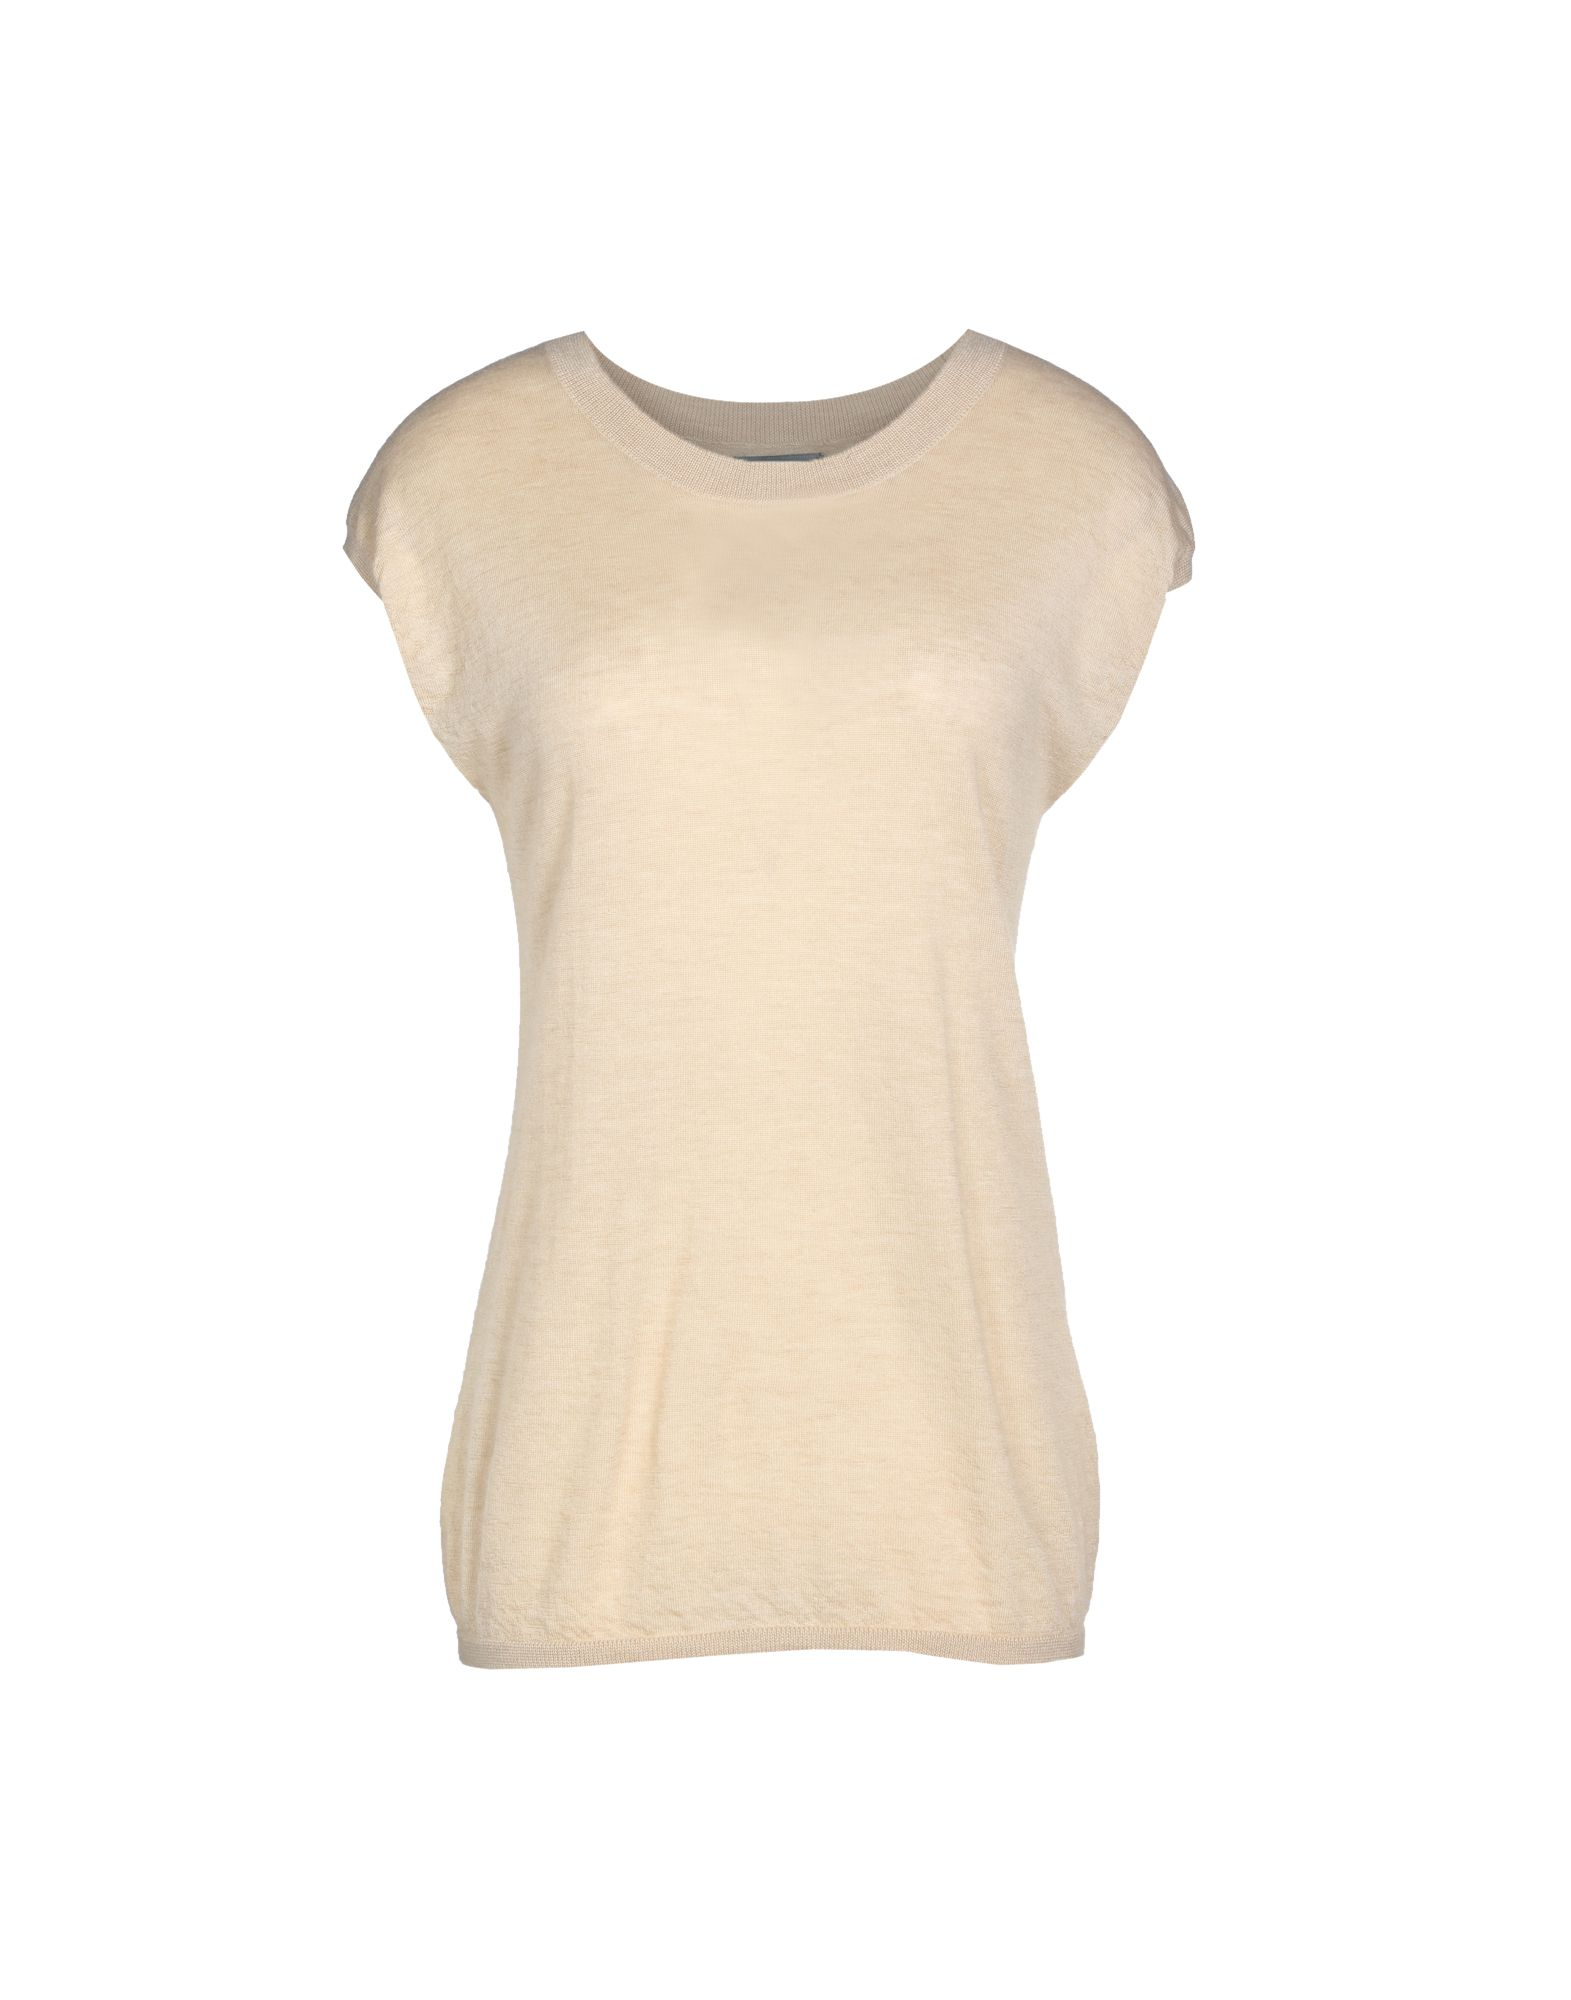 MAIYET Cashmere Blend in Sand